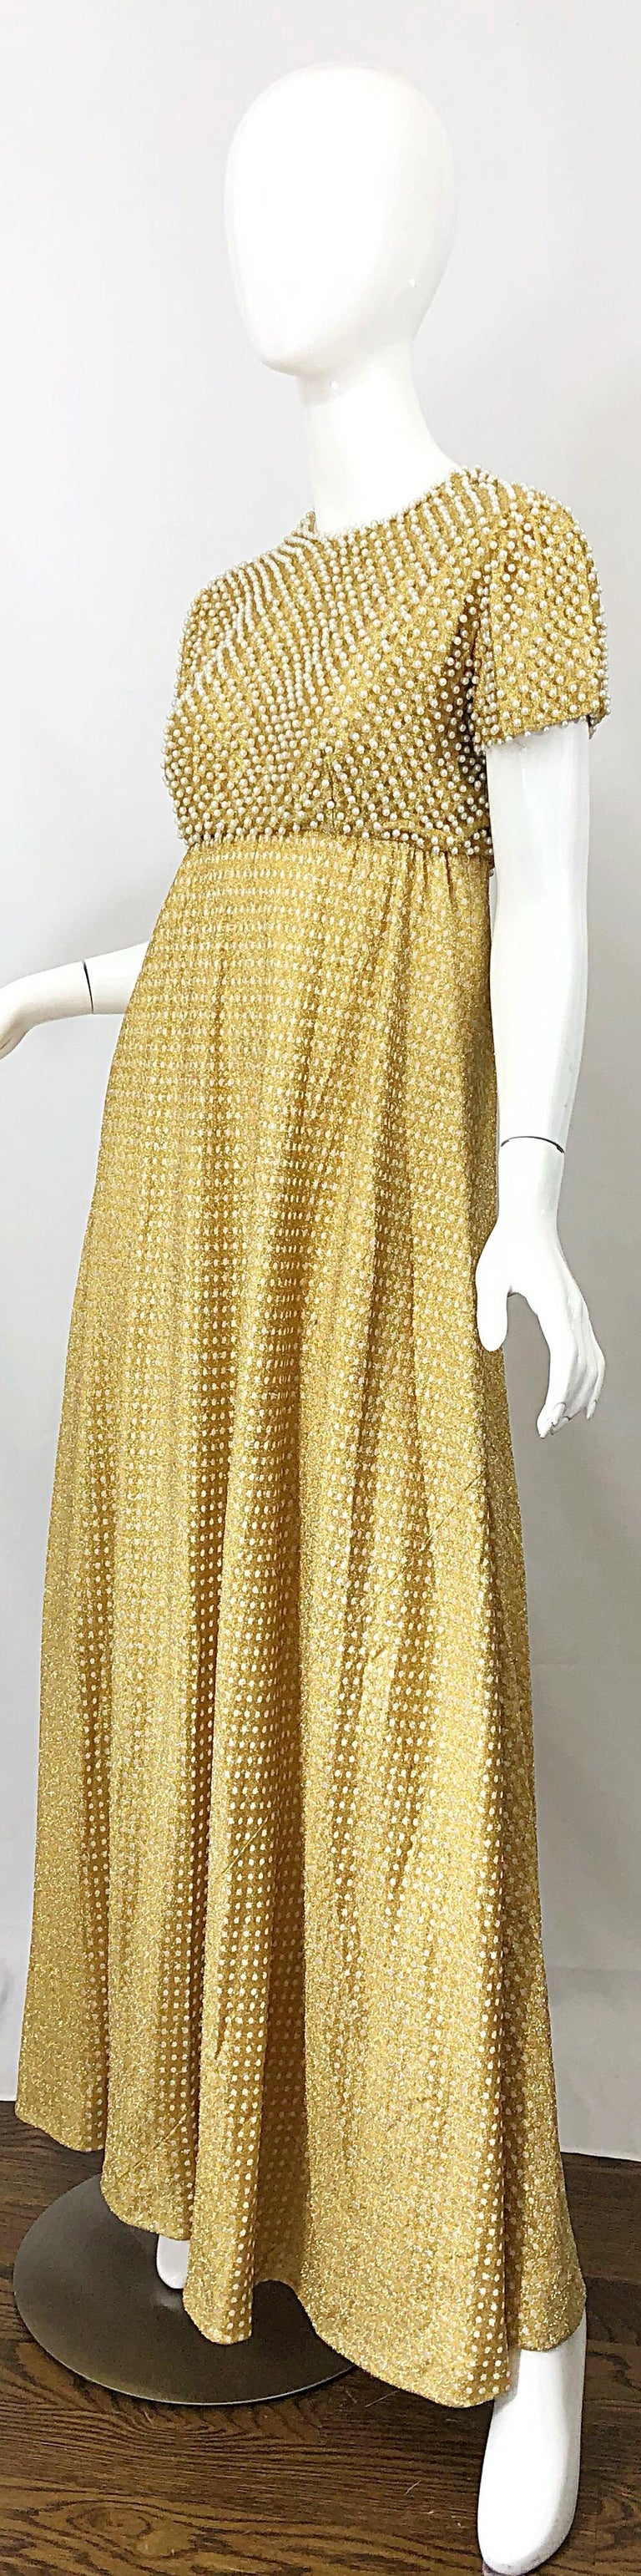 1960s Geoffrey Beene Couture Gold Silk Pearl Encrusted Vintage 60s Gown Dress In Excellent Condition For Sale In Chicago, IL